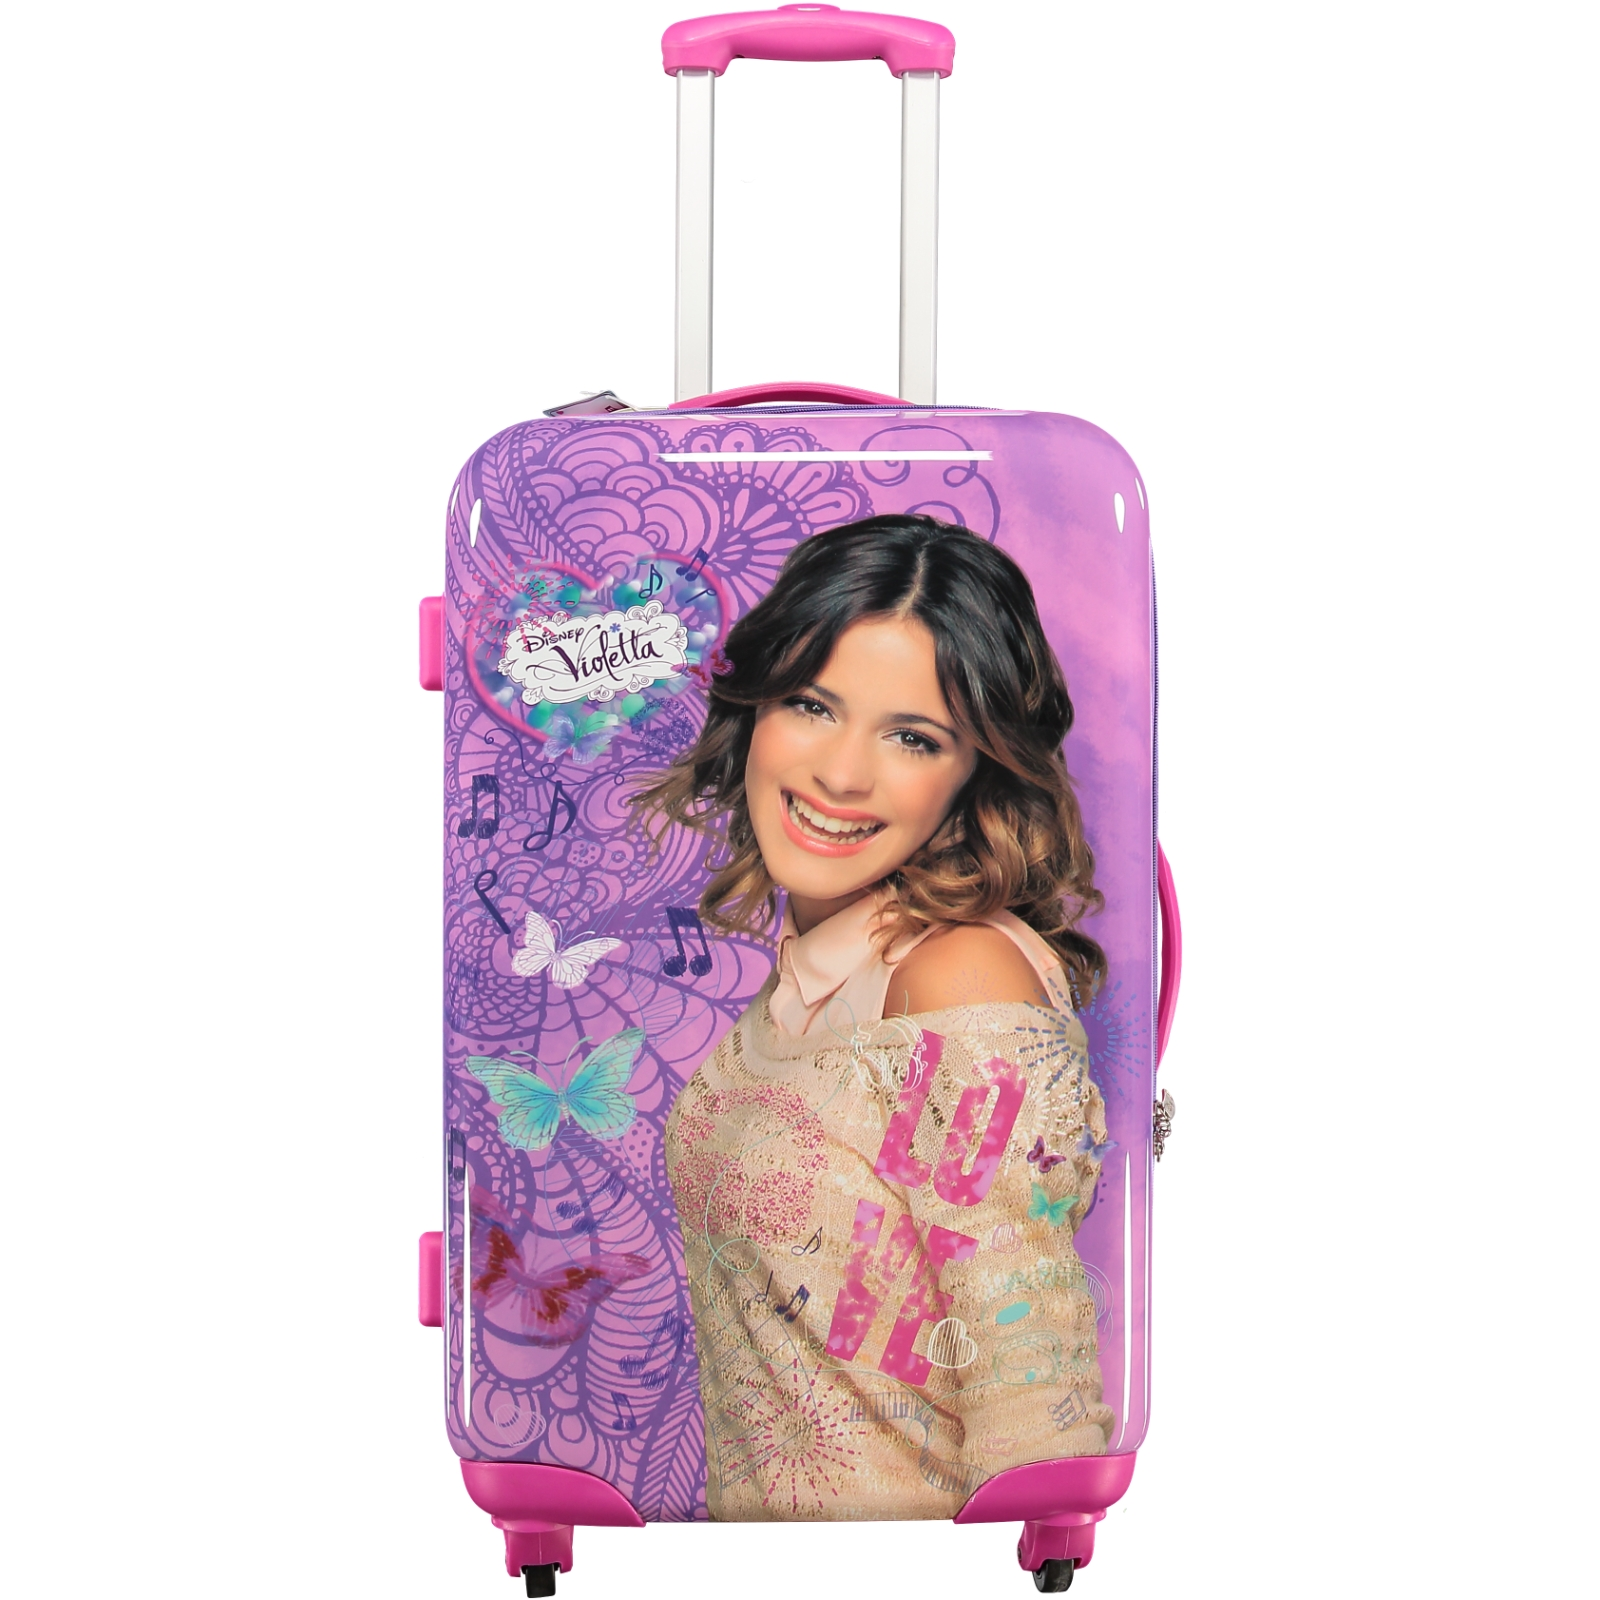 north star m dchen kinder reise trolley disney s violetta rosa eu ebay. Black Bedroom Furniture Sets. Home Design Ideas